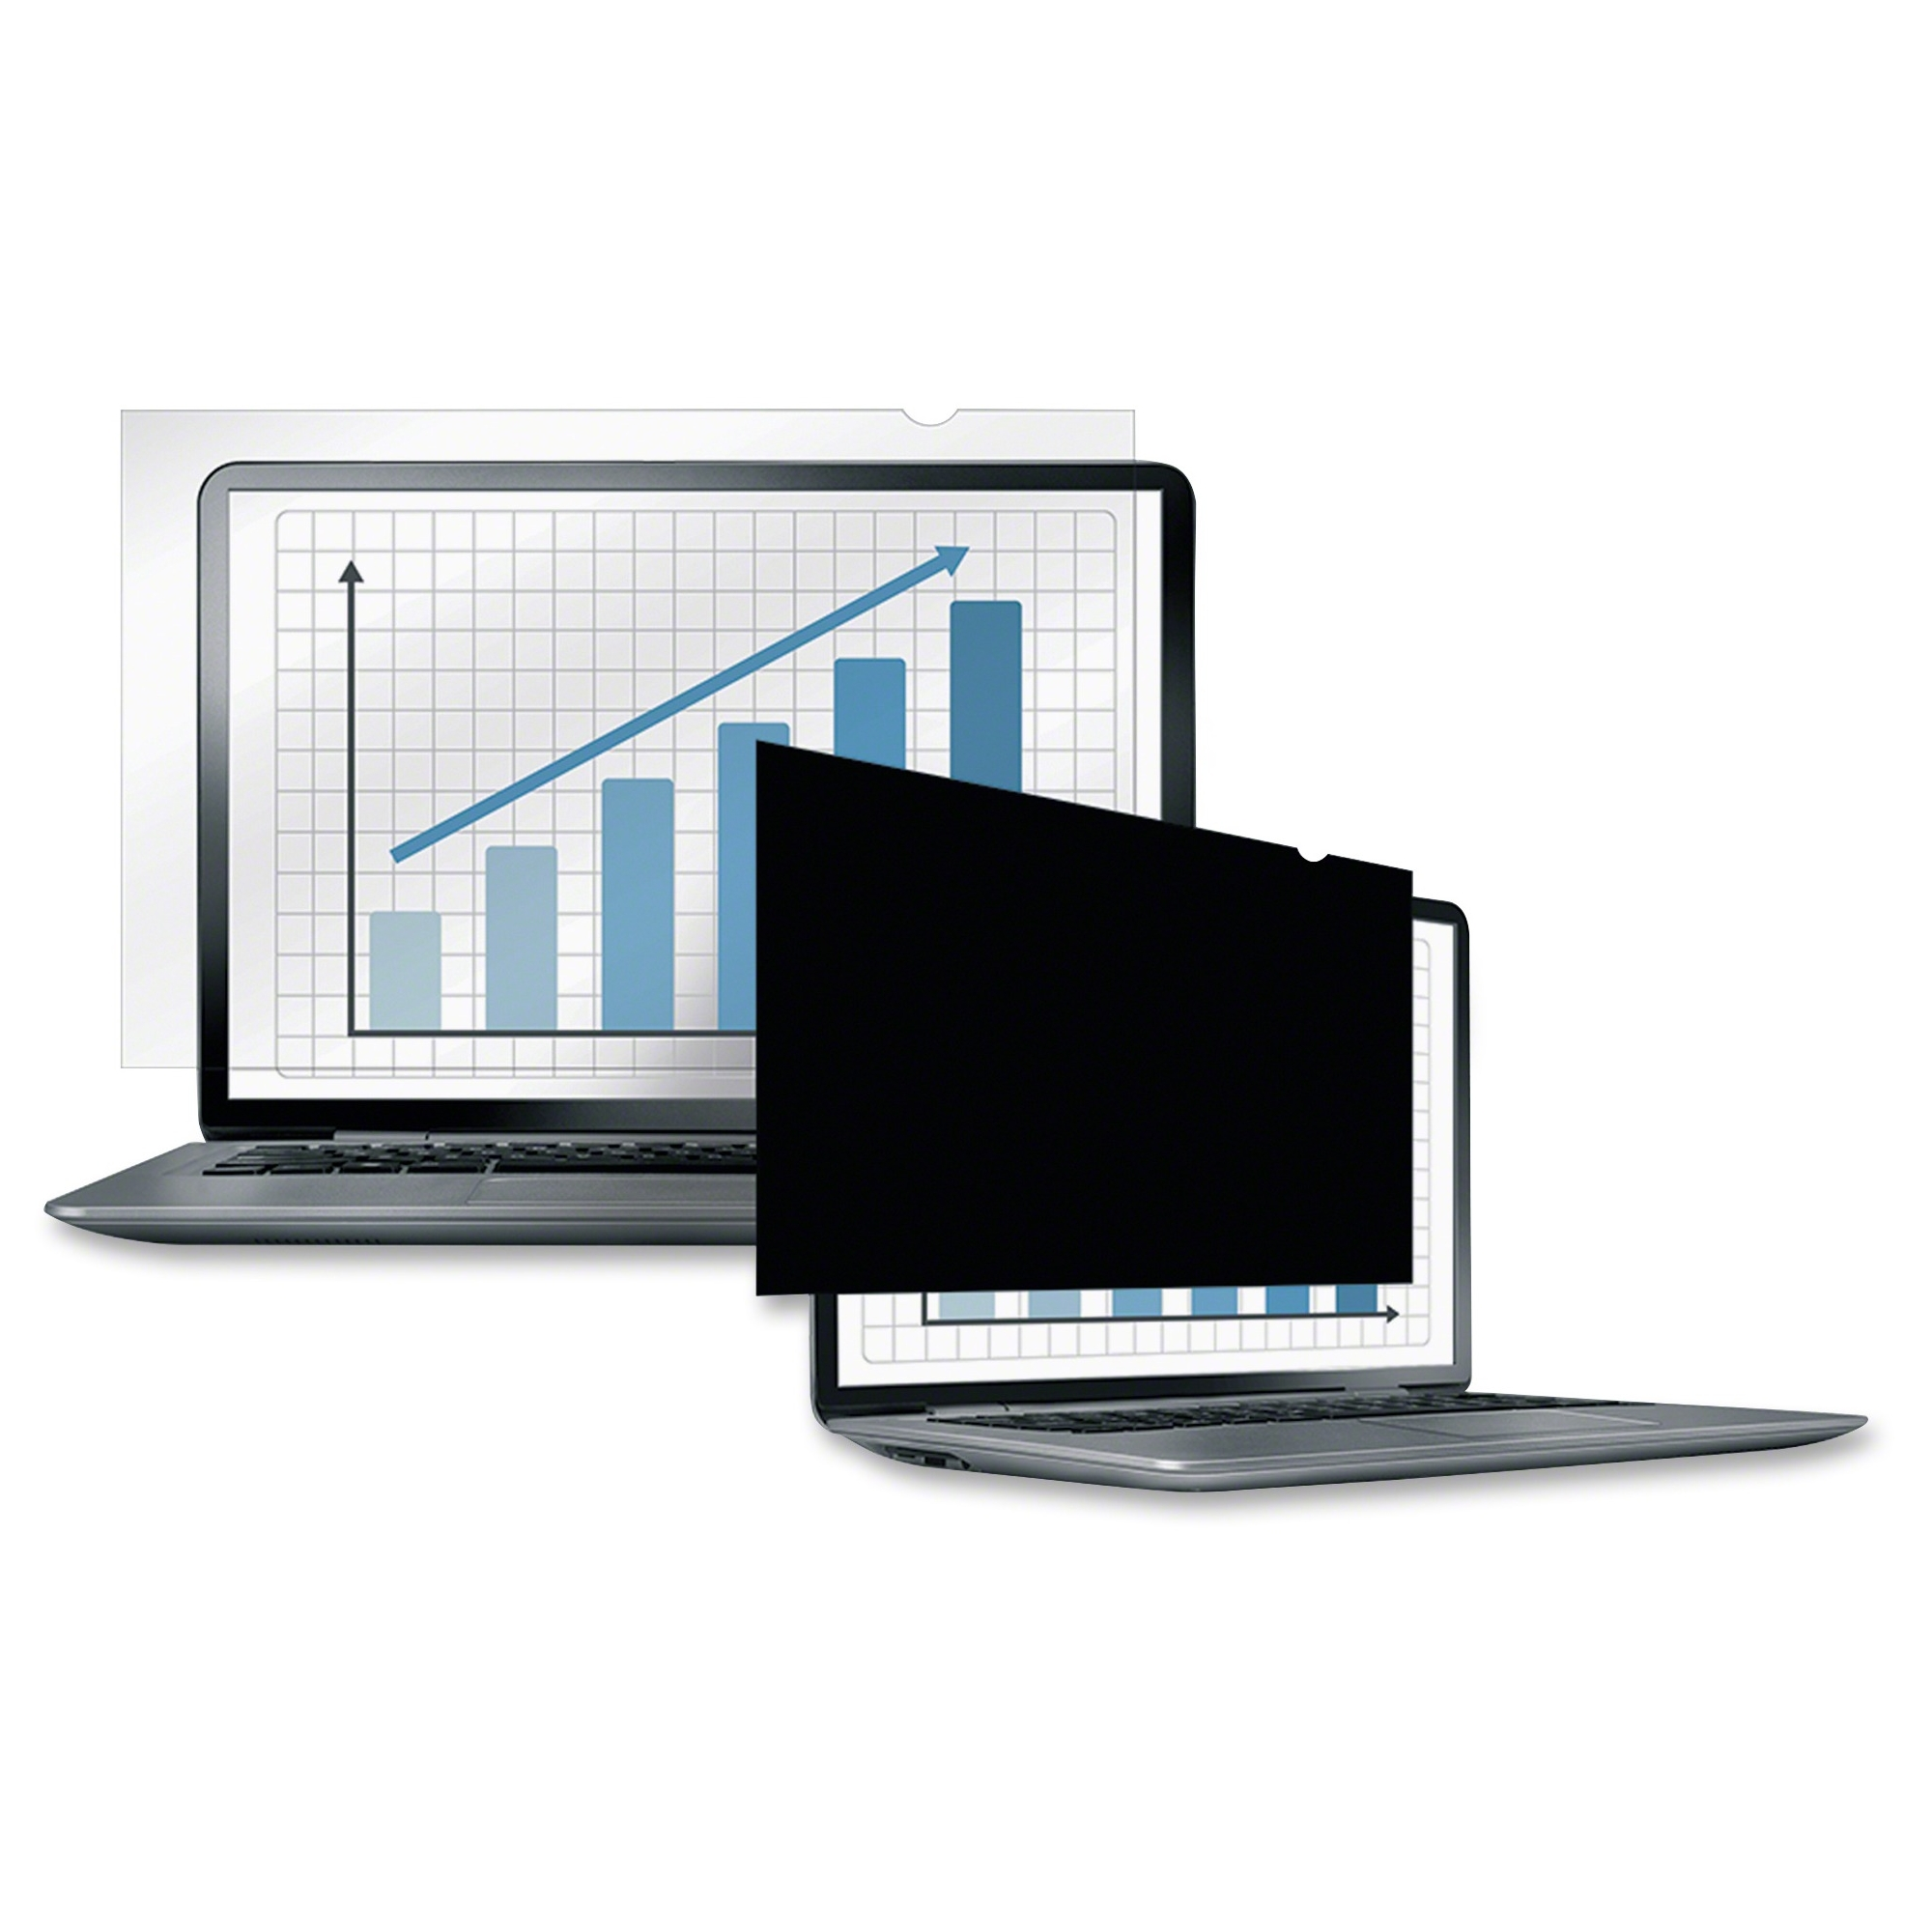 Privascreen Blackout Privacy Filter For 13.3 inch Widescreen Lcd/notebook 16:9